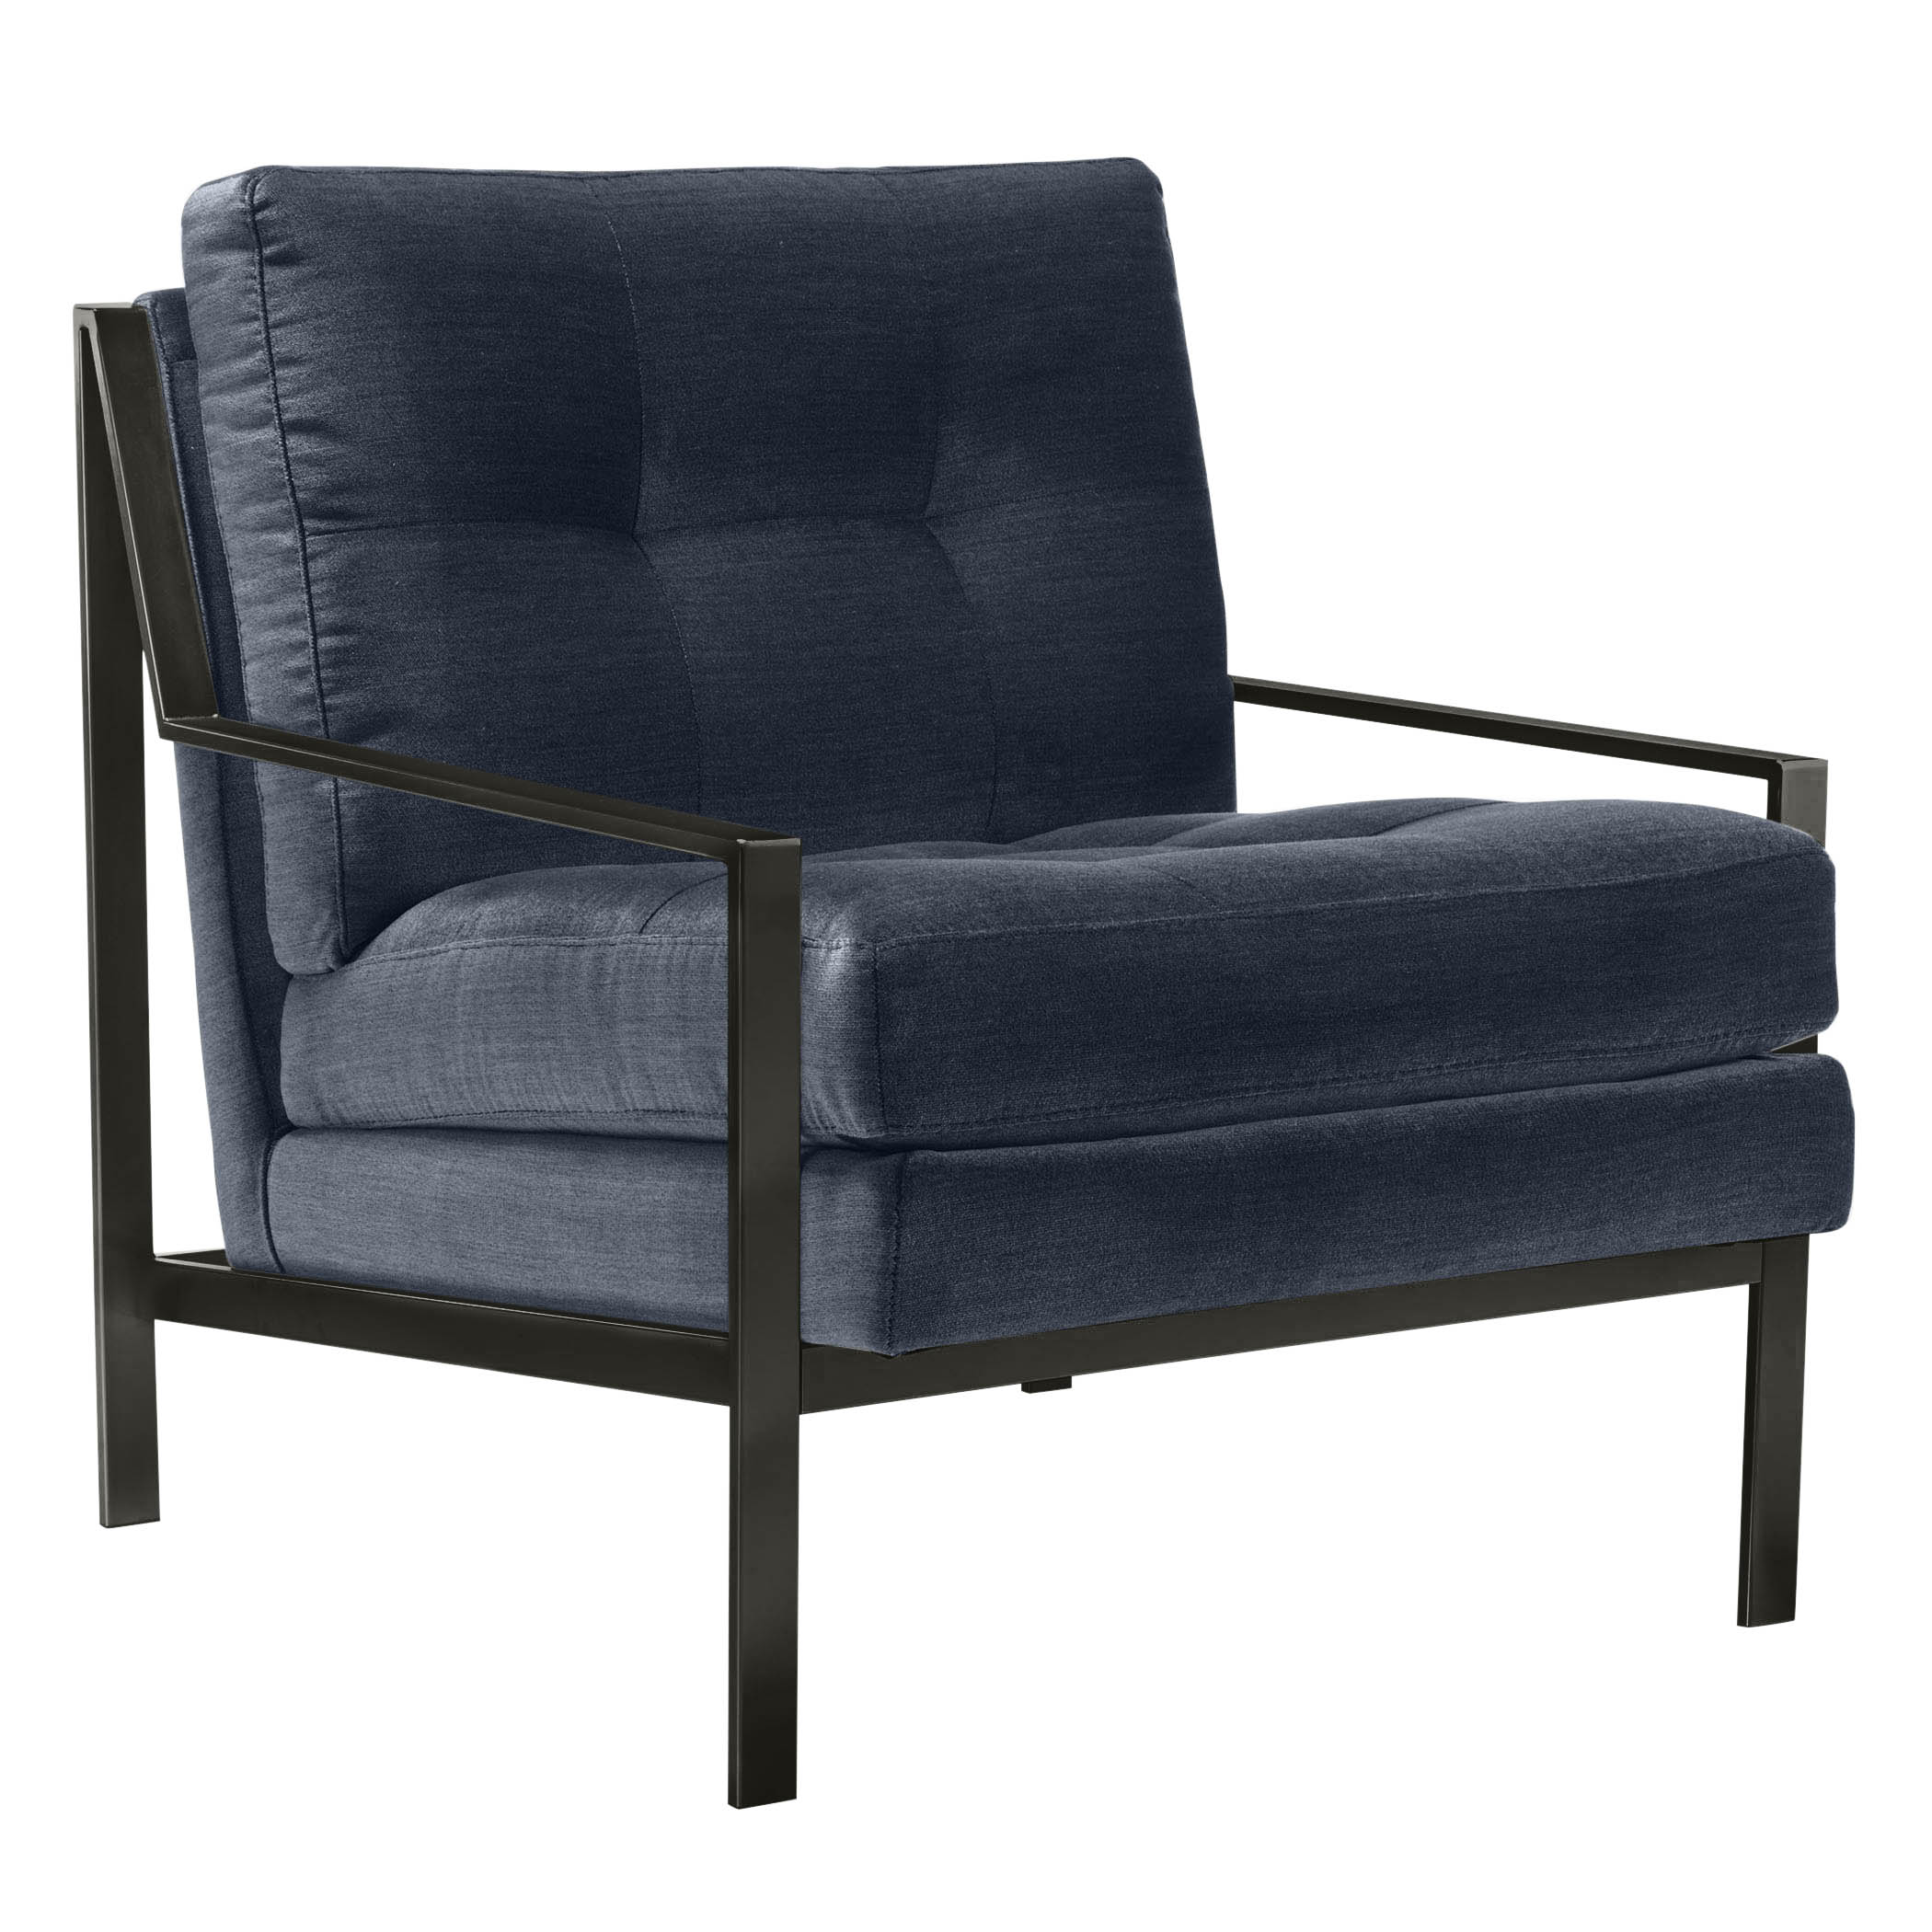 Axel Accent Chair - Black